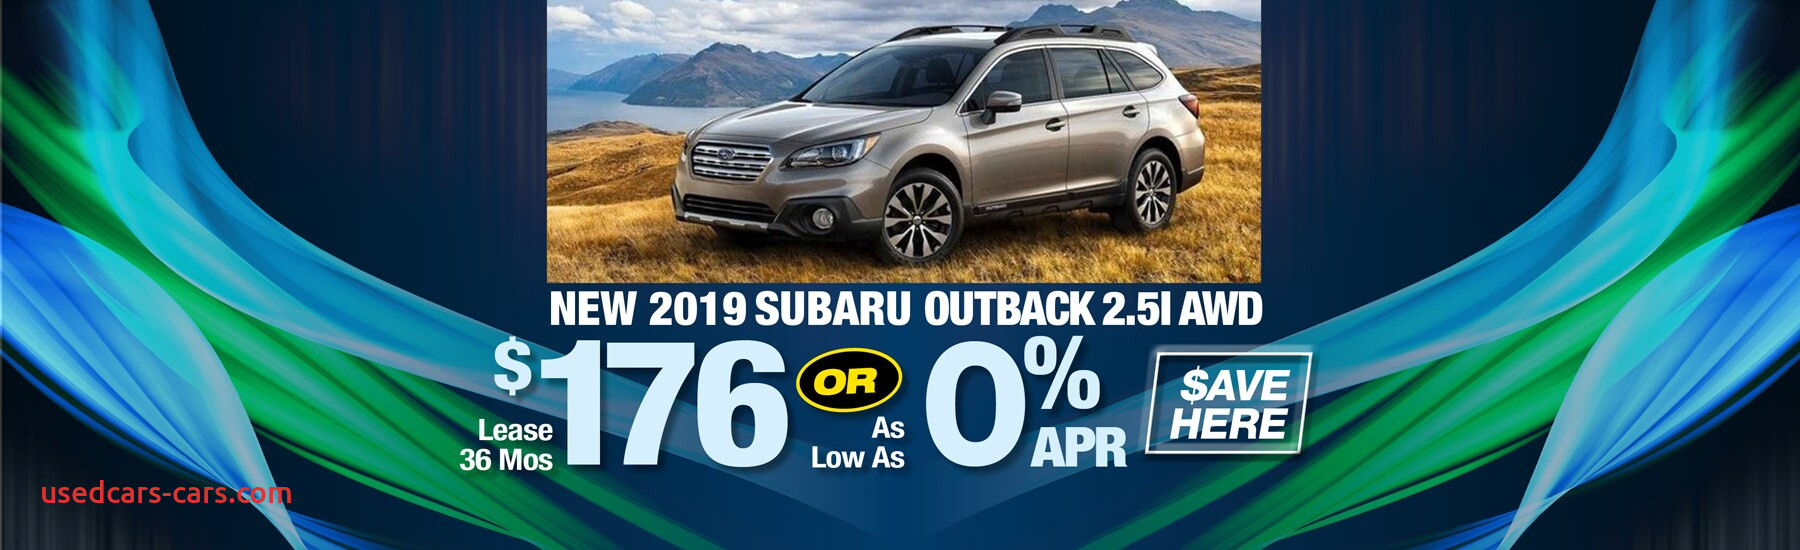 Matt Slap Subaru Lovely New Subaru Used Car Dealer In Newark De Matt Slap